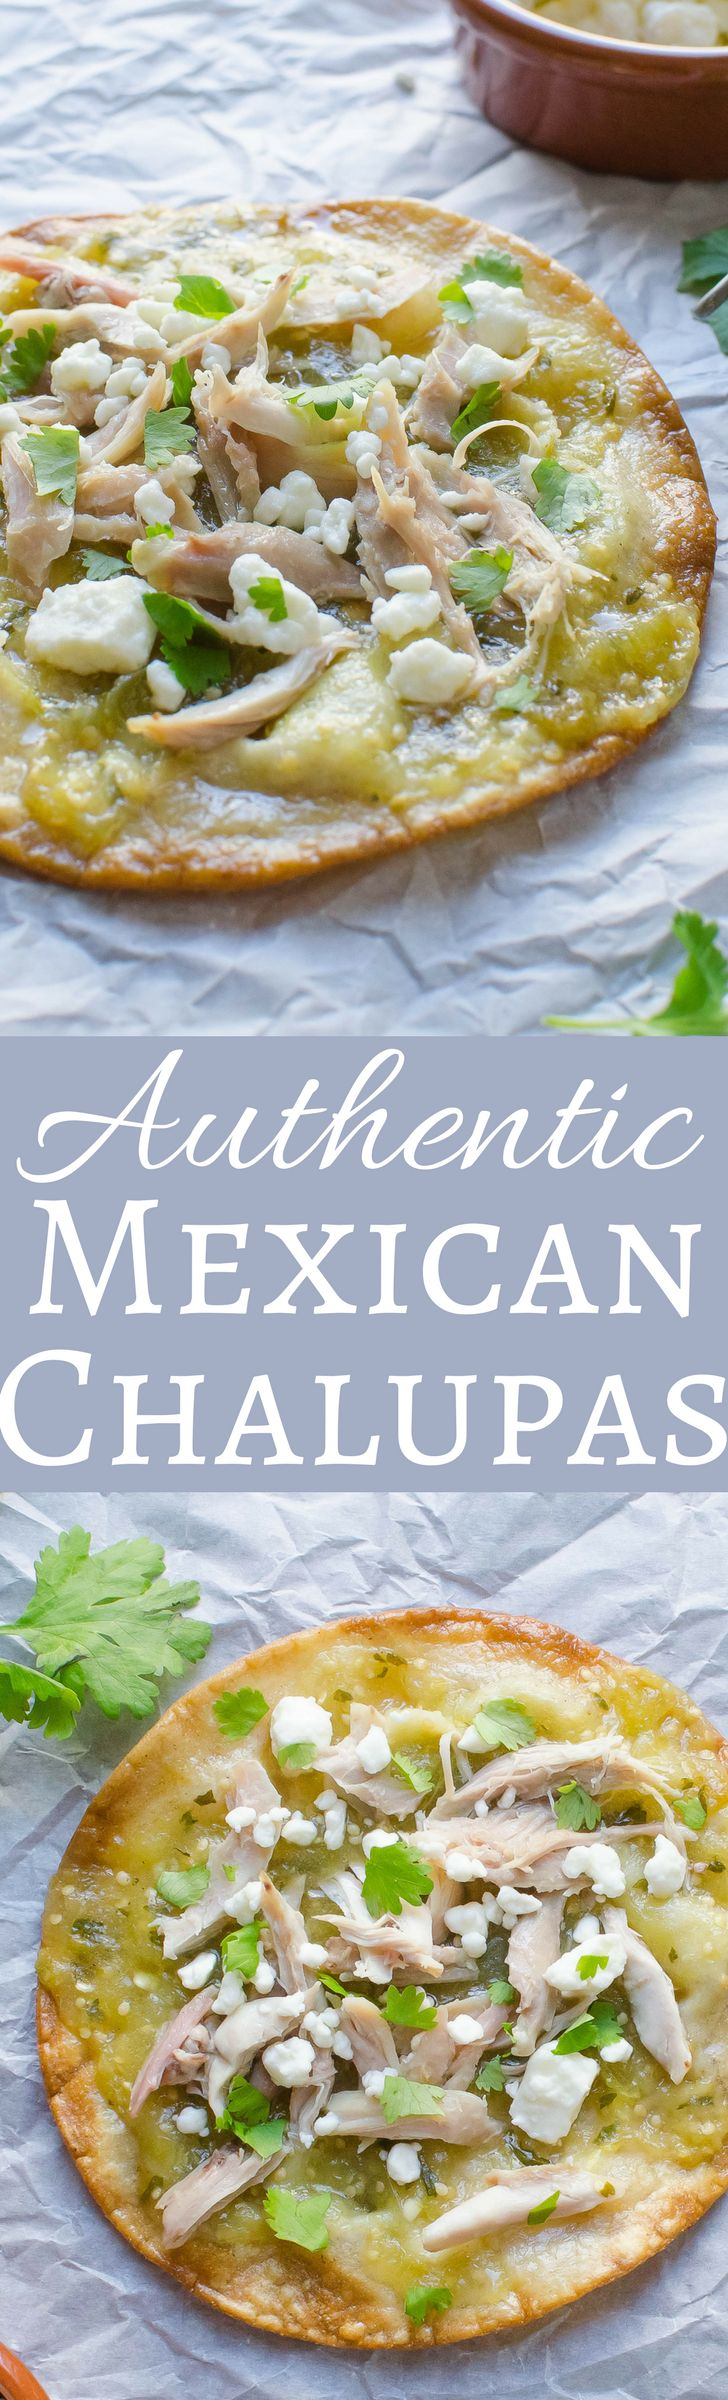 This easy recipe for Authentic Mexican Chalupas will surprise you! These chalupas are crispy & flaky with pulled pork or chicken, mild cheese & a bit of heat!